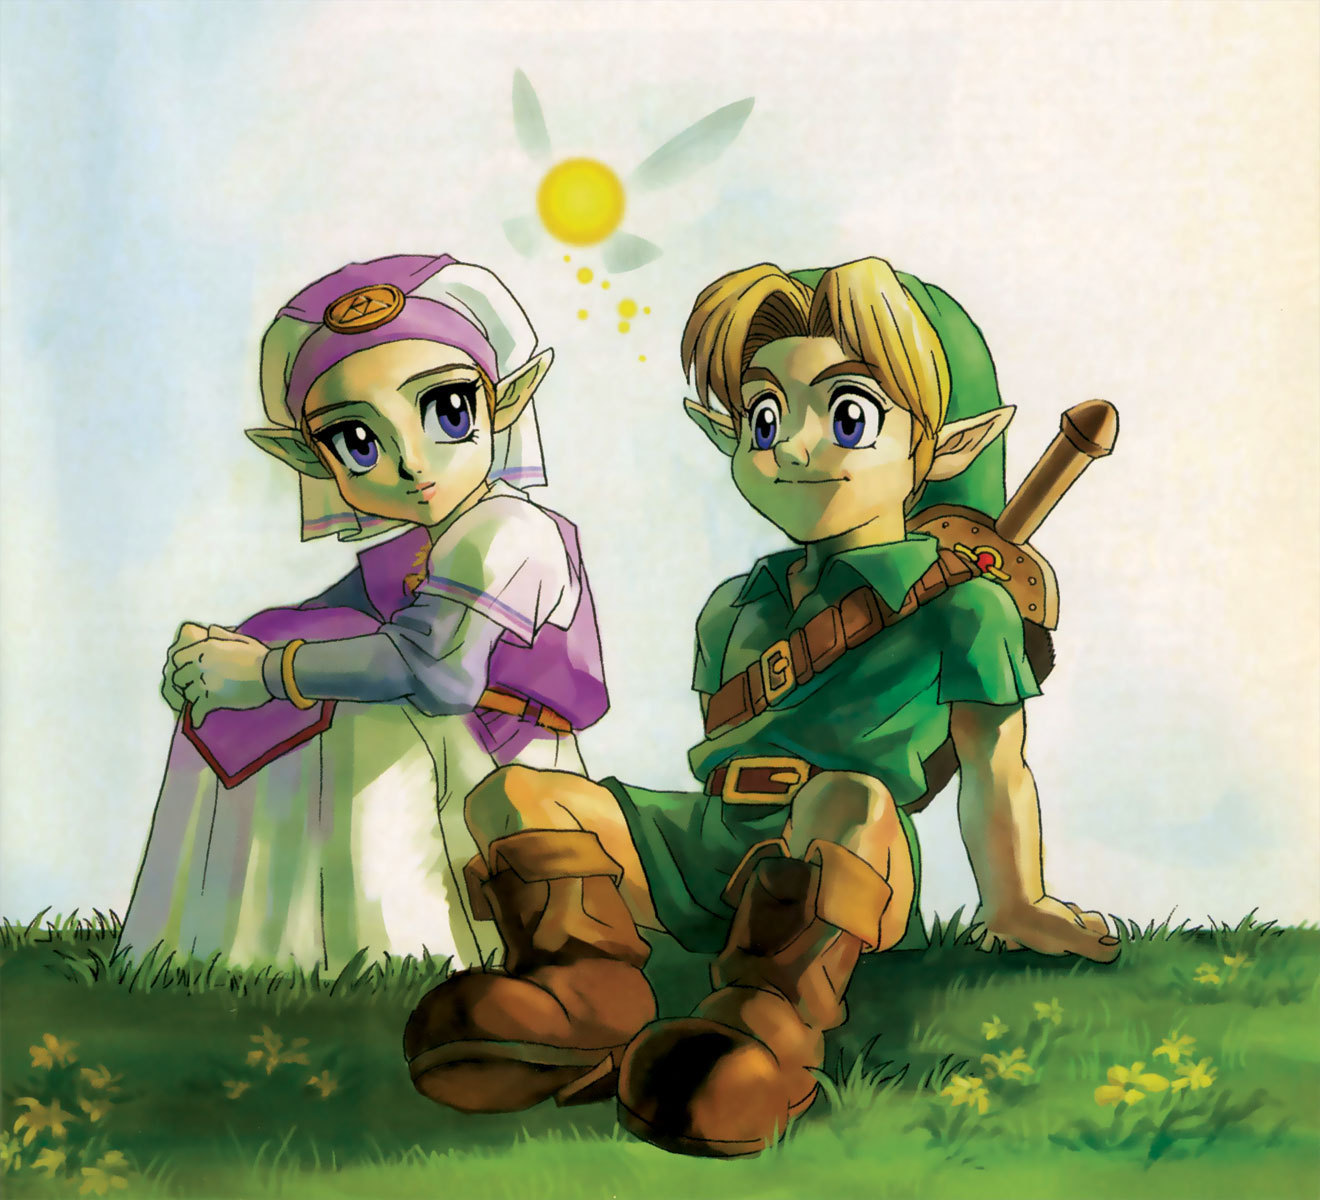 The Ocarina of Time The Legend of Zelda Ocarina of TimeZelda And Link Kiss Ocarina Of Time